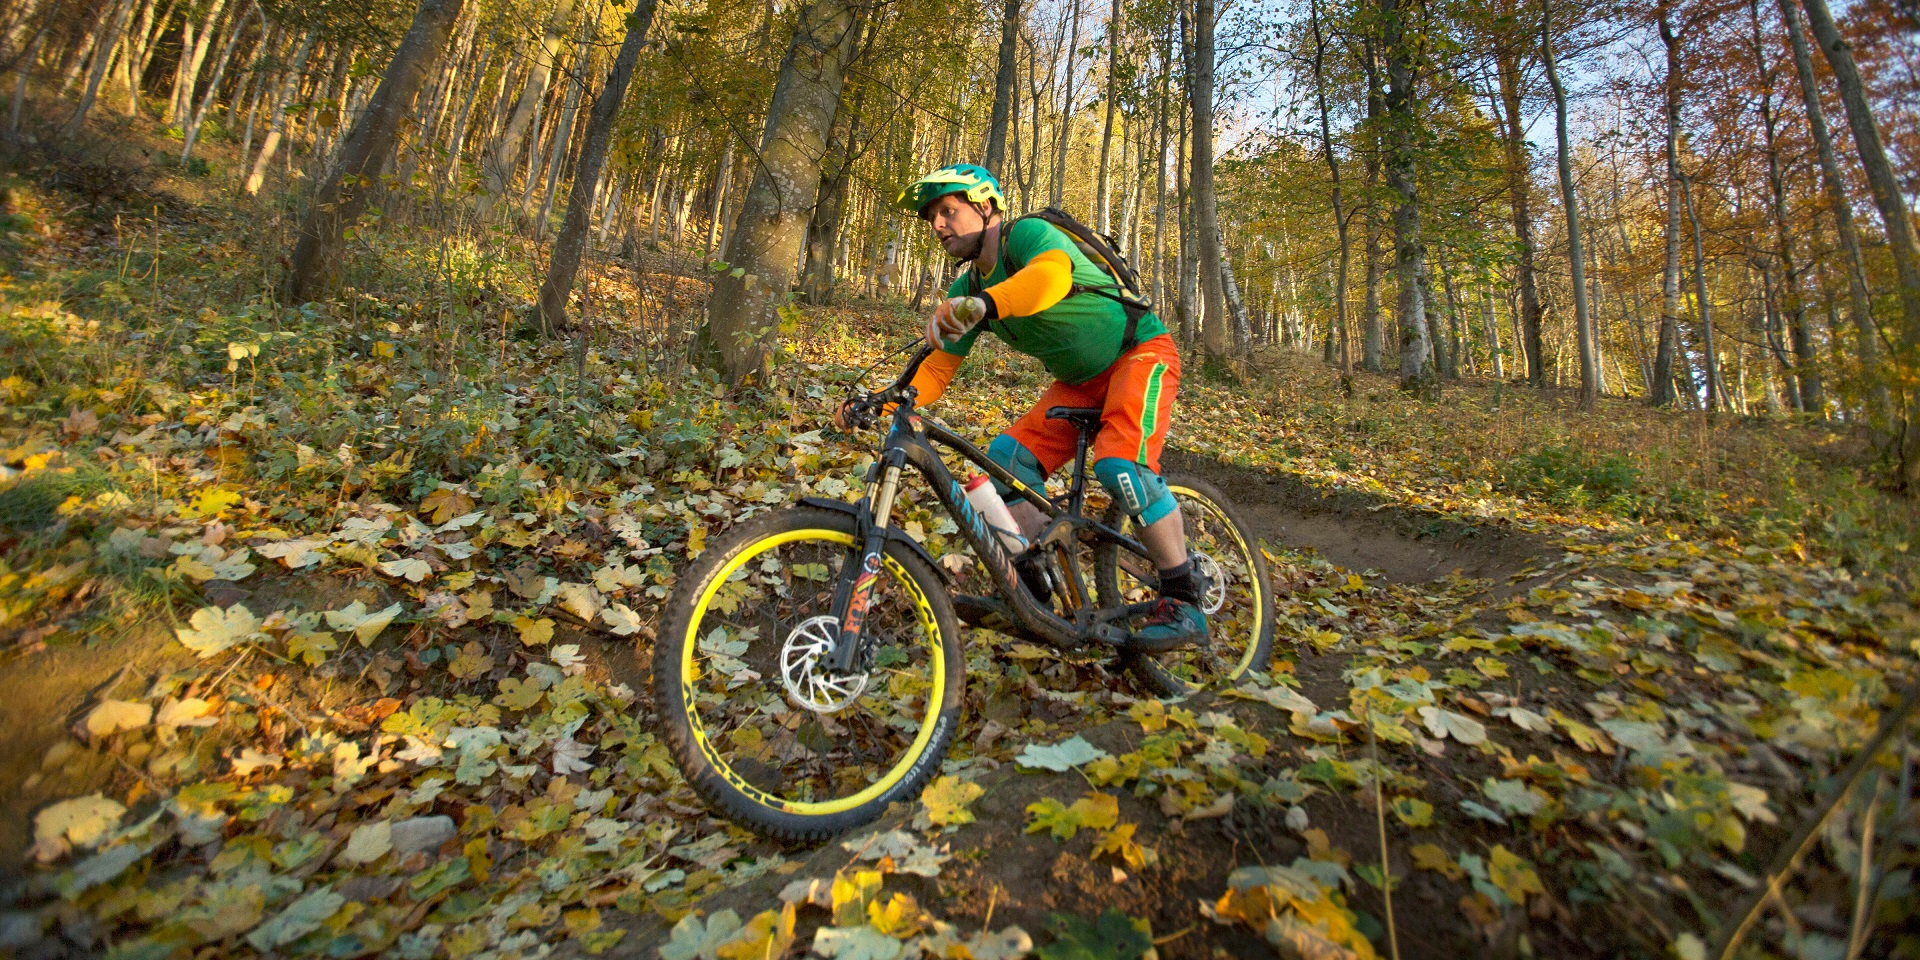 A cyclist biking down a mountain bike trail in a woodland